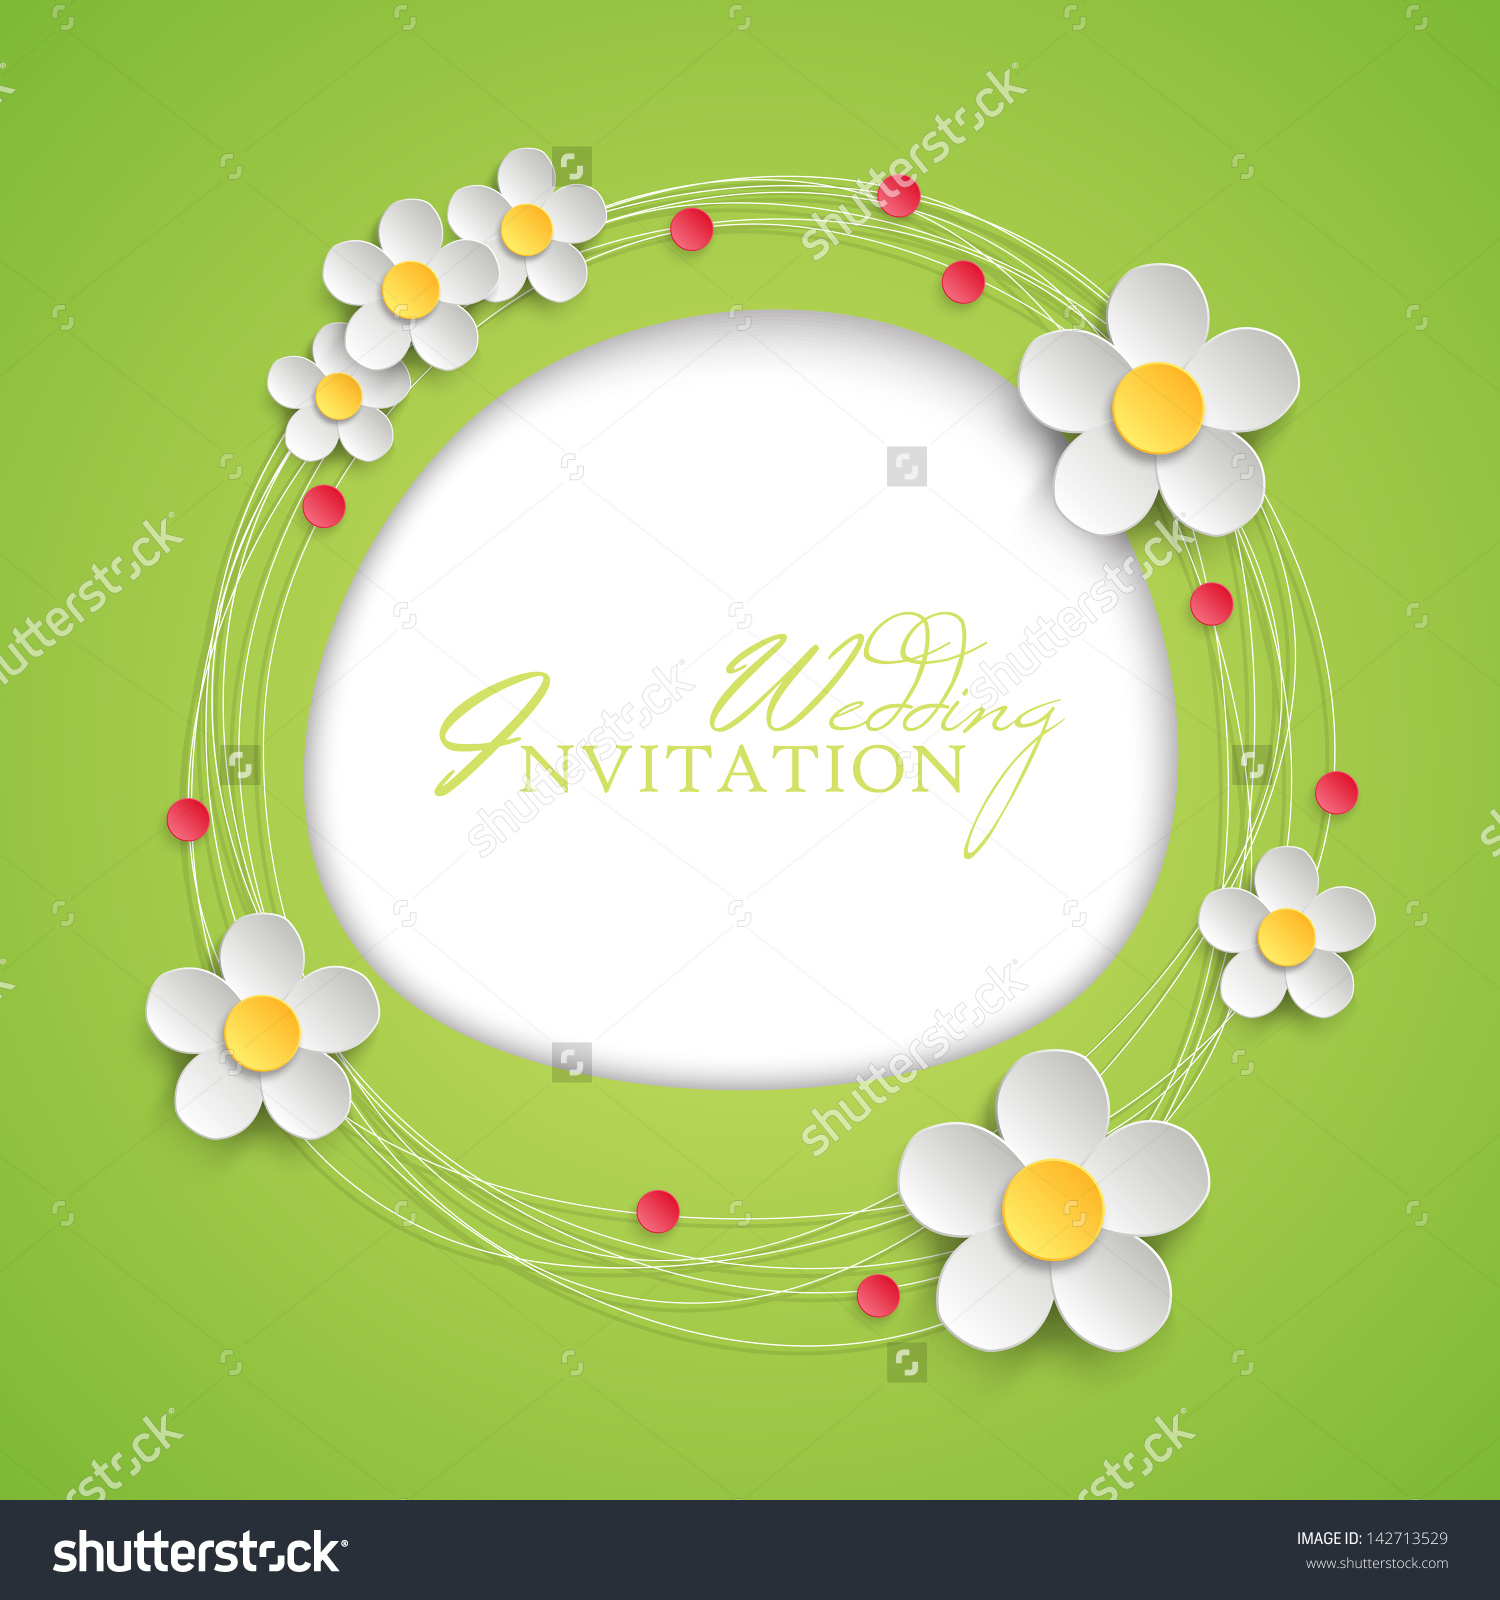 Floral Invitation Design With Paper Daisy Flowers. Vector.